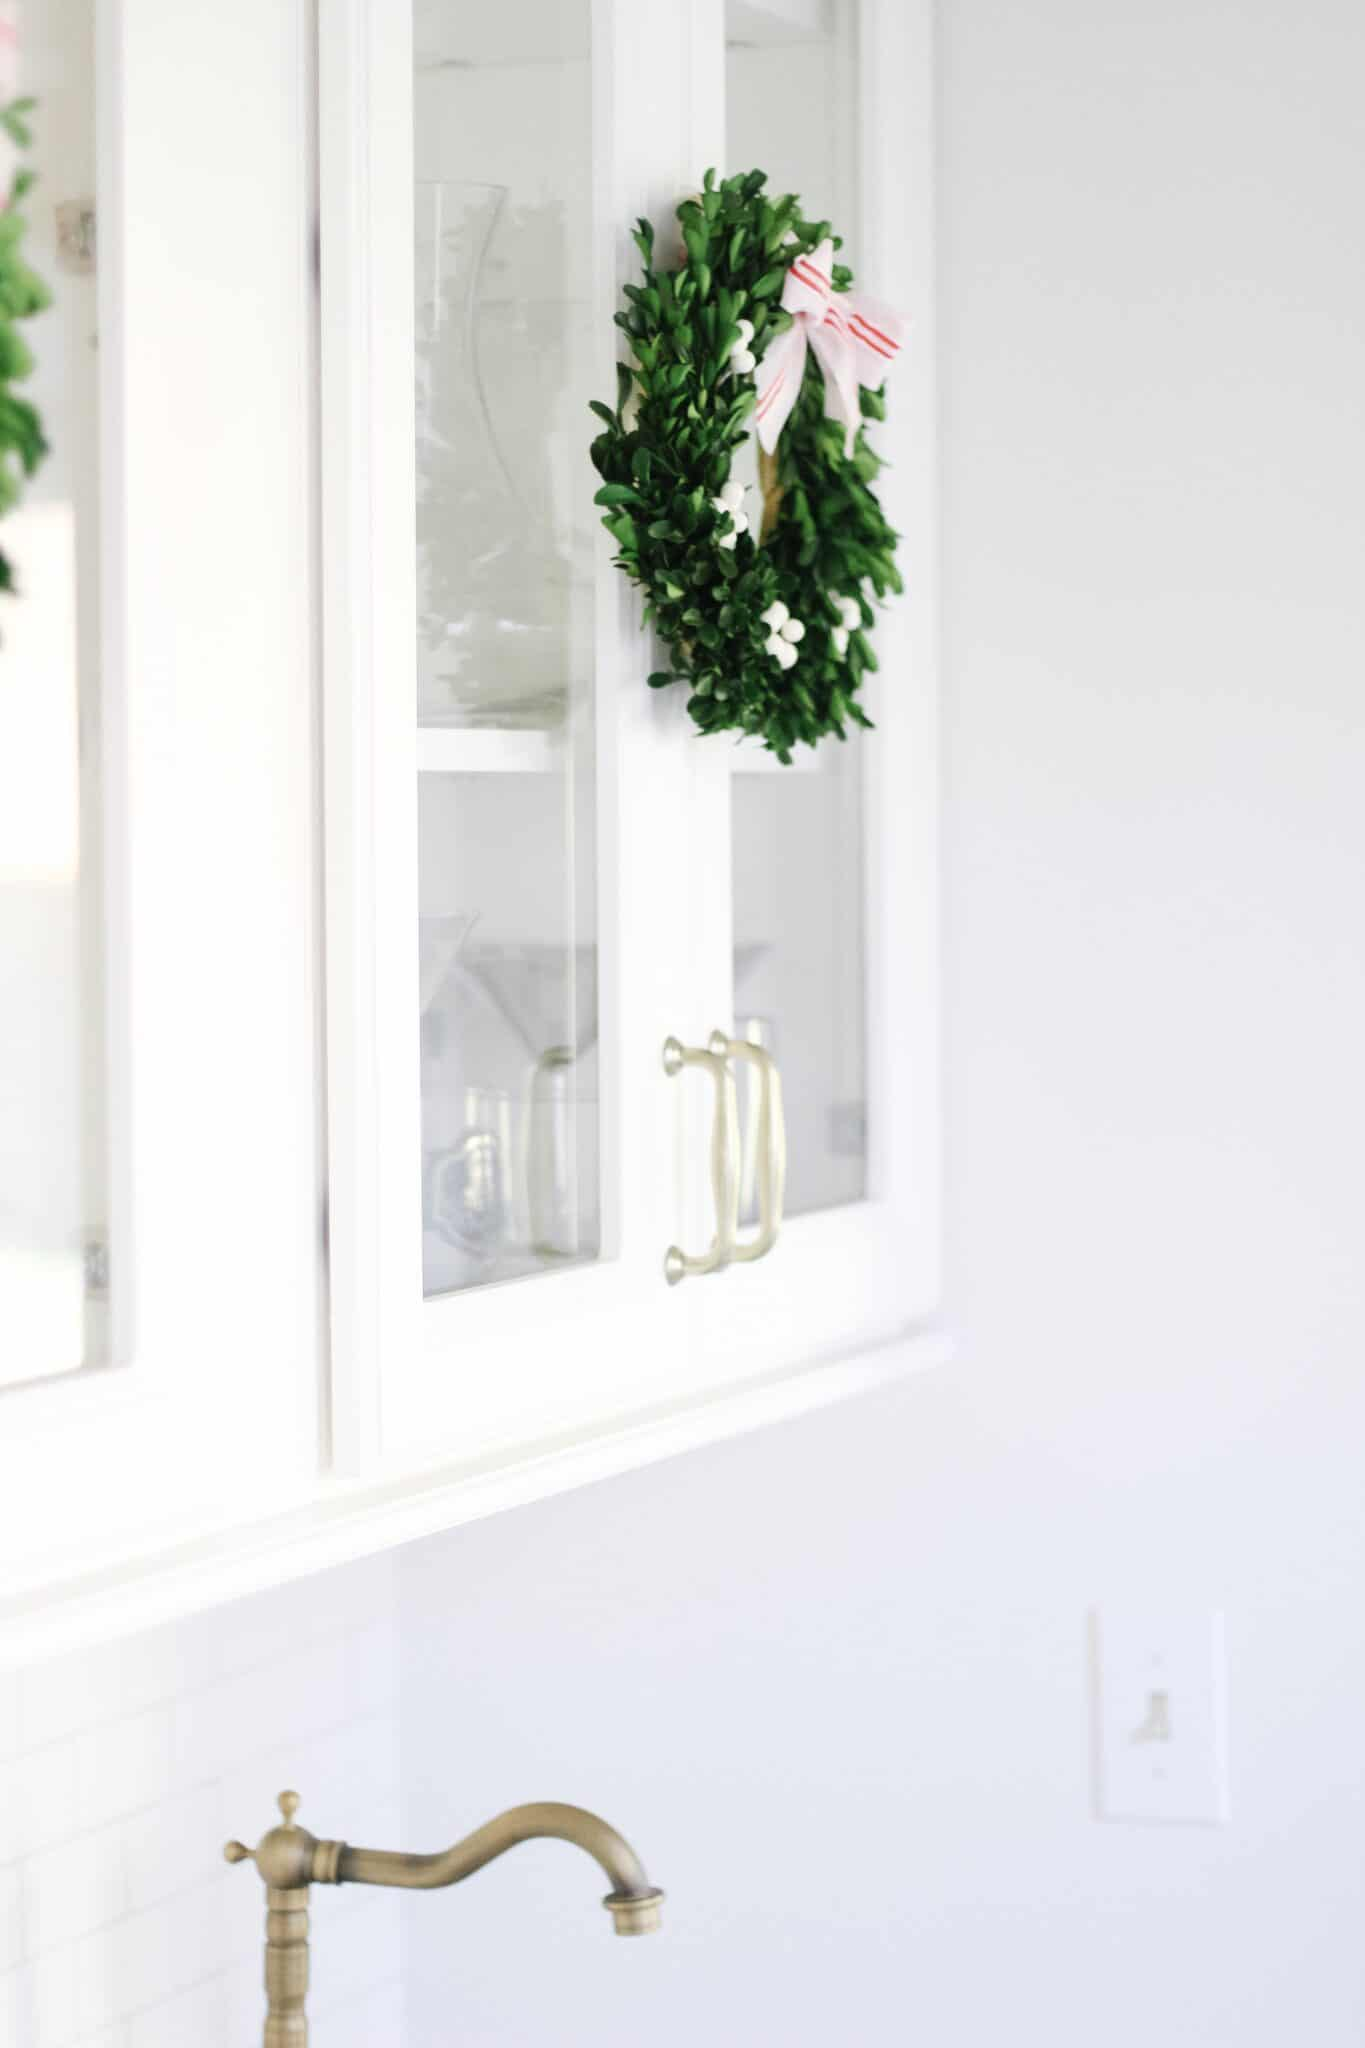 Boxwood Wreaths on white cabinets